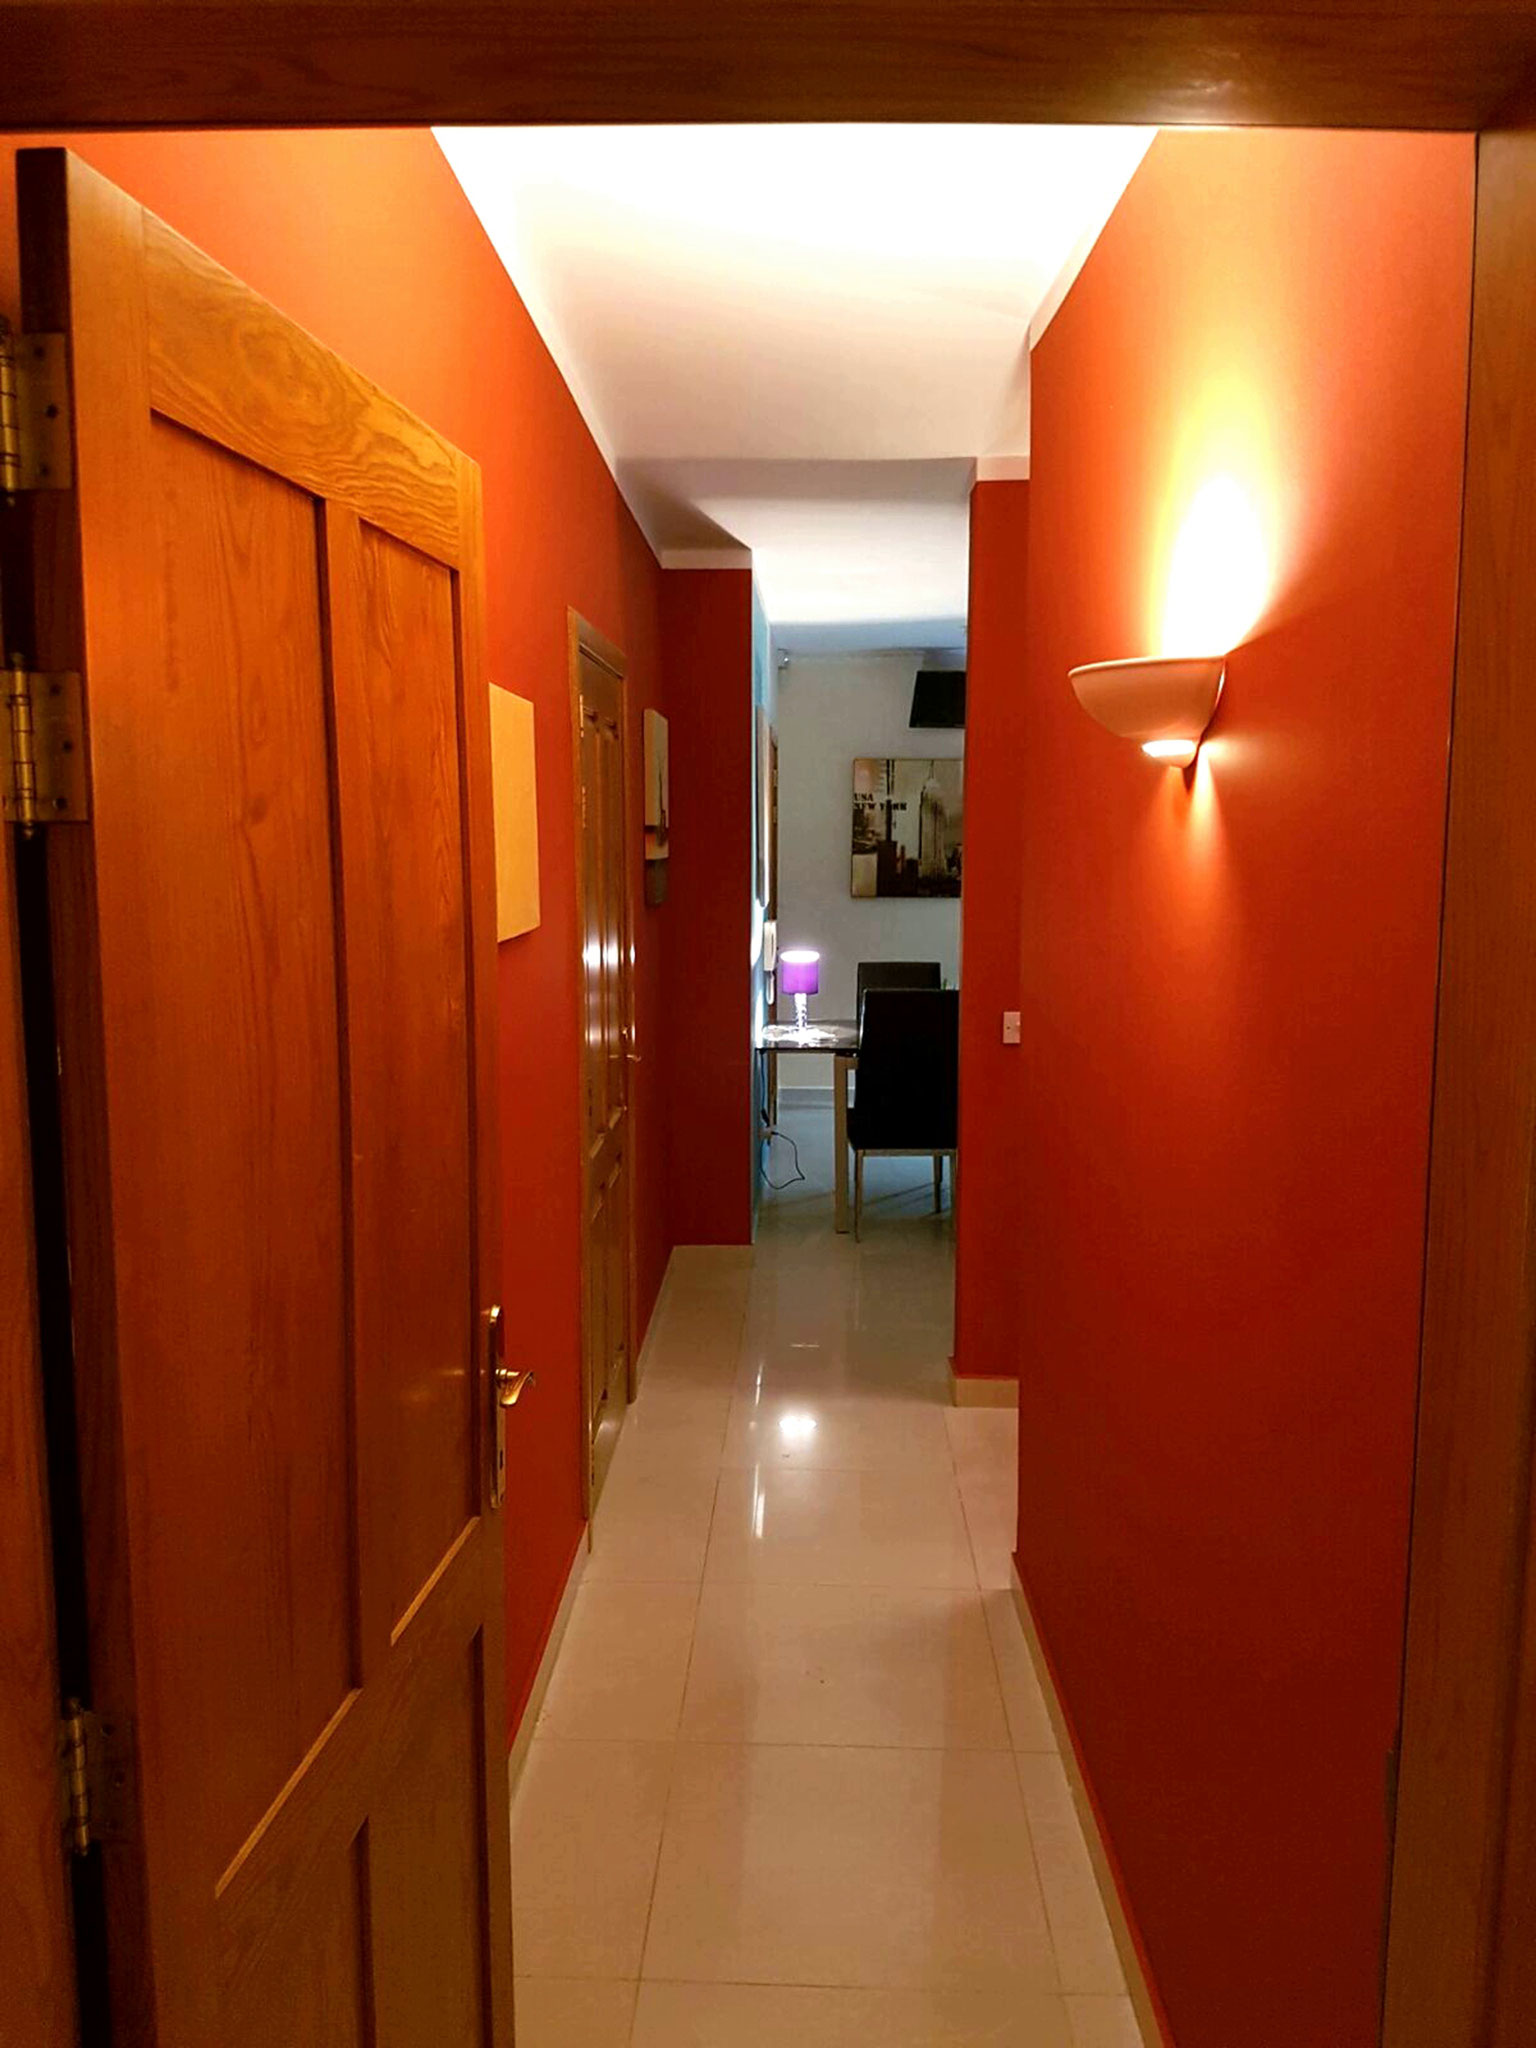 corridor to the back of the apartment